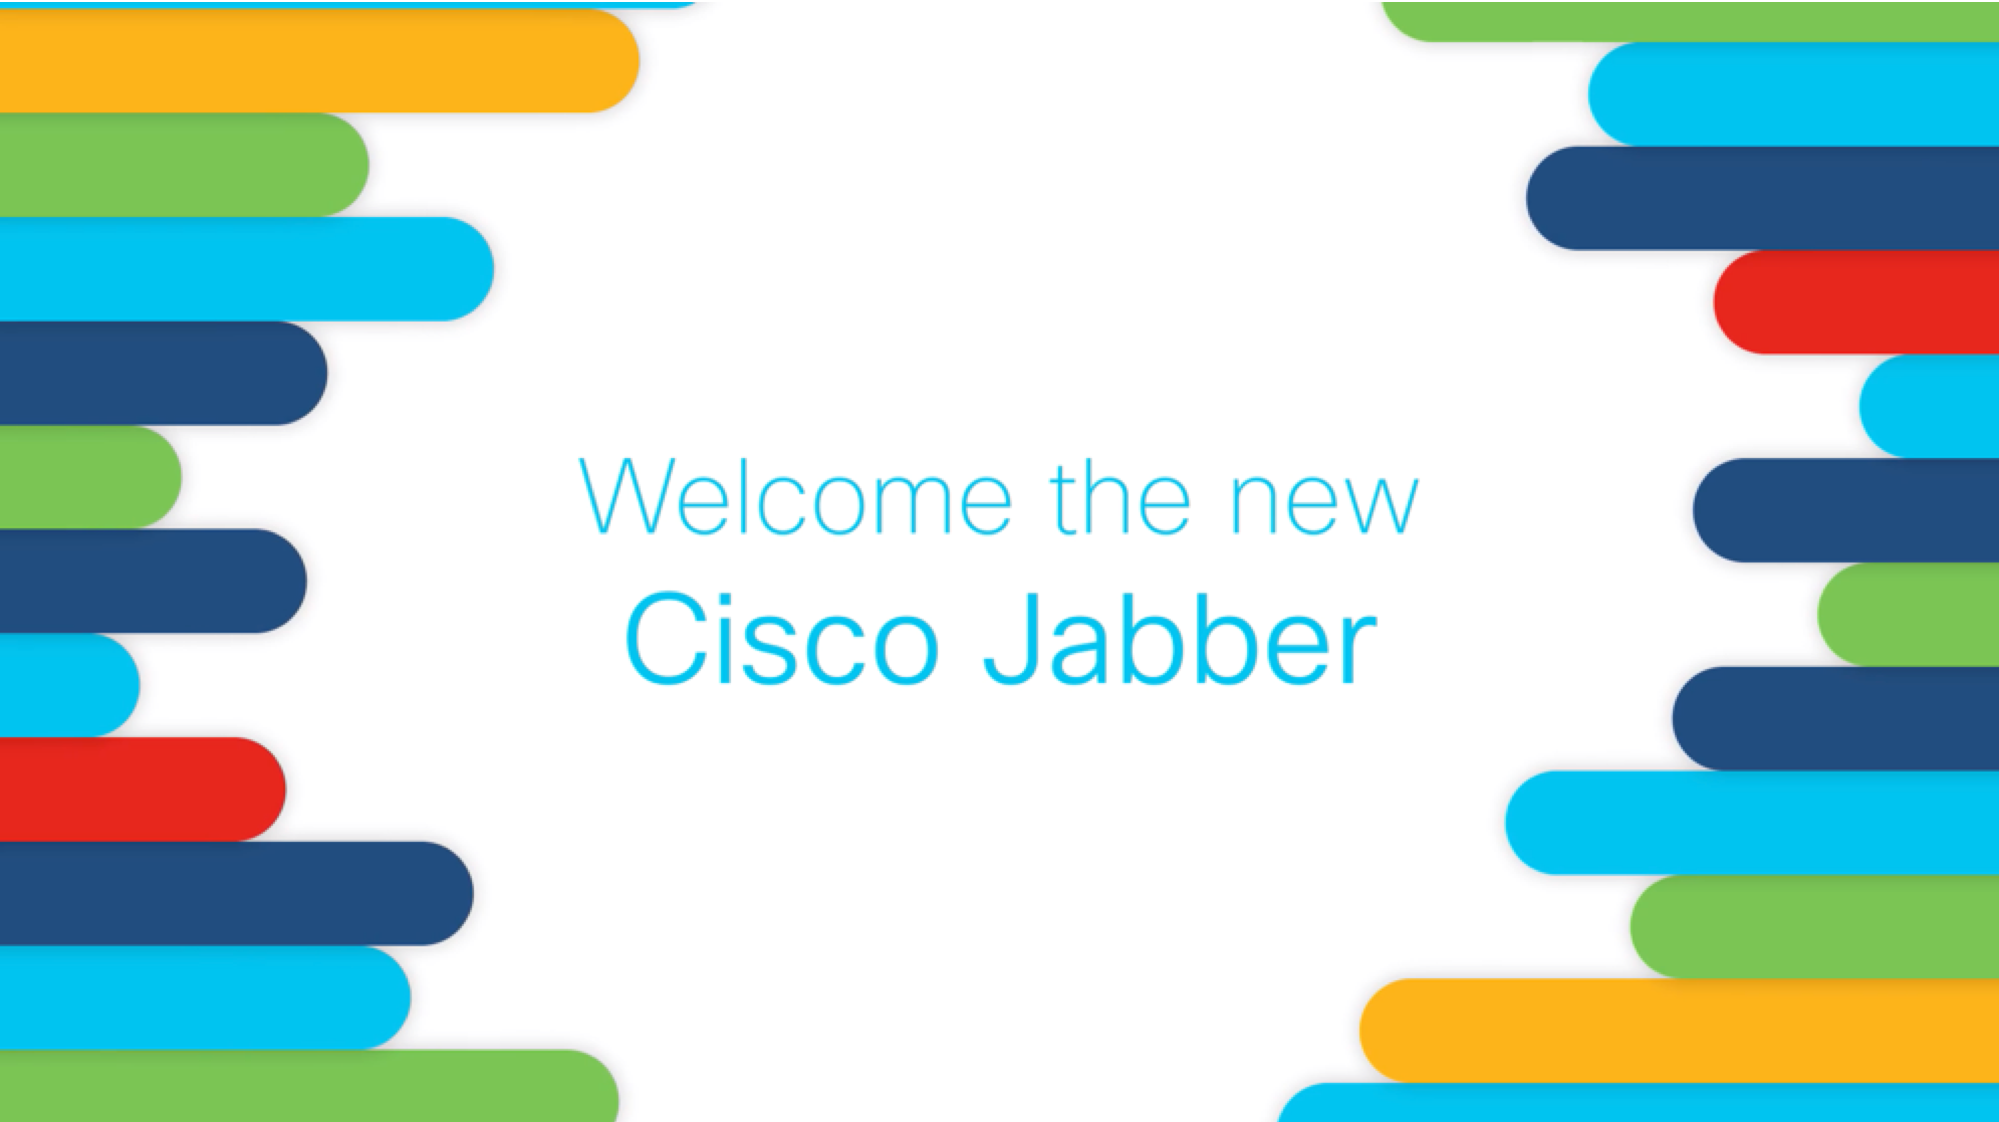 Welcome to the new Cisco Jabber